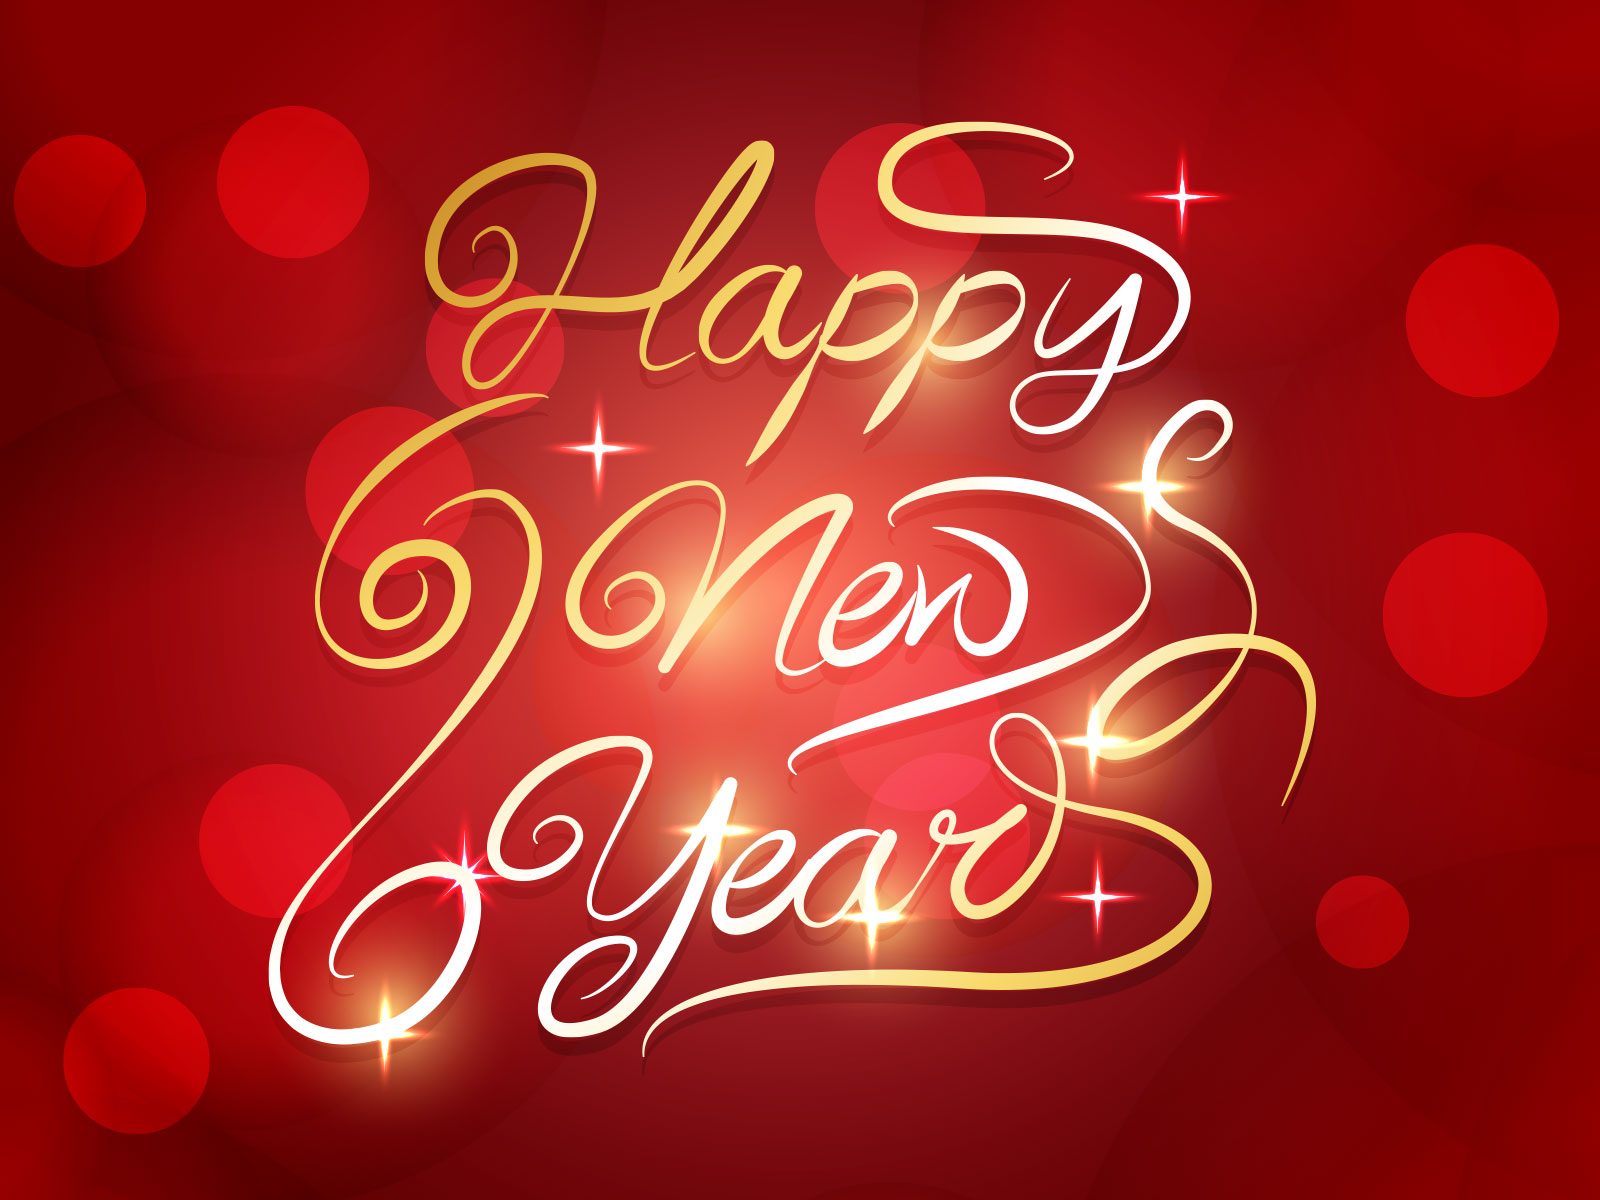 10 happy new year 2016 photos hd